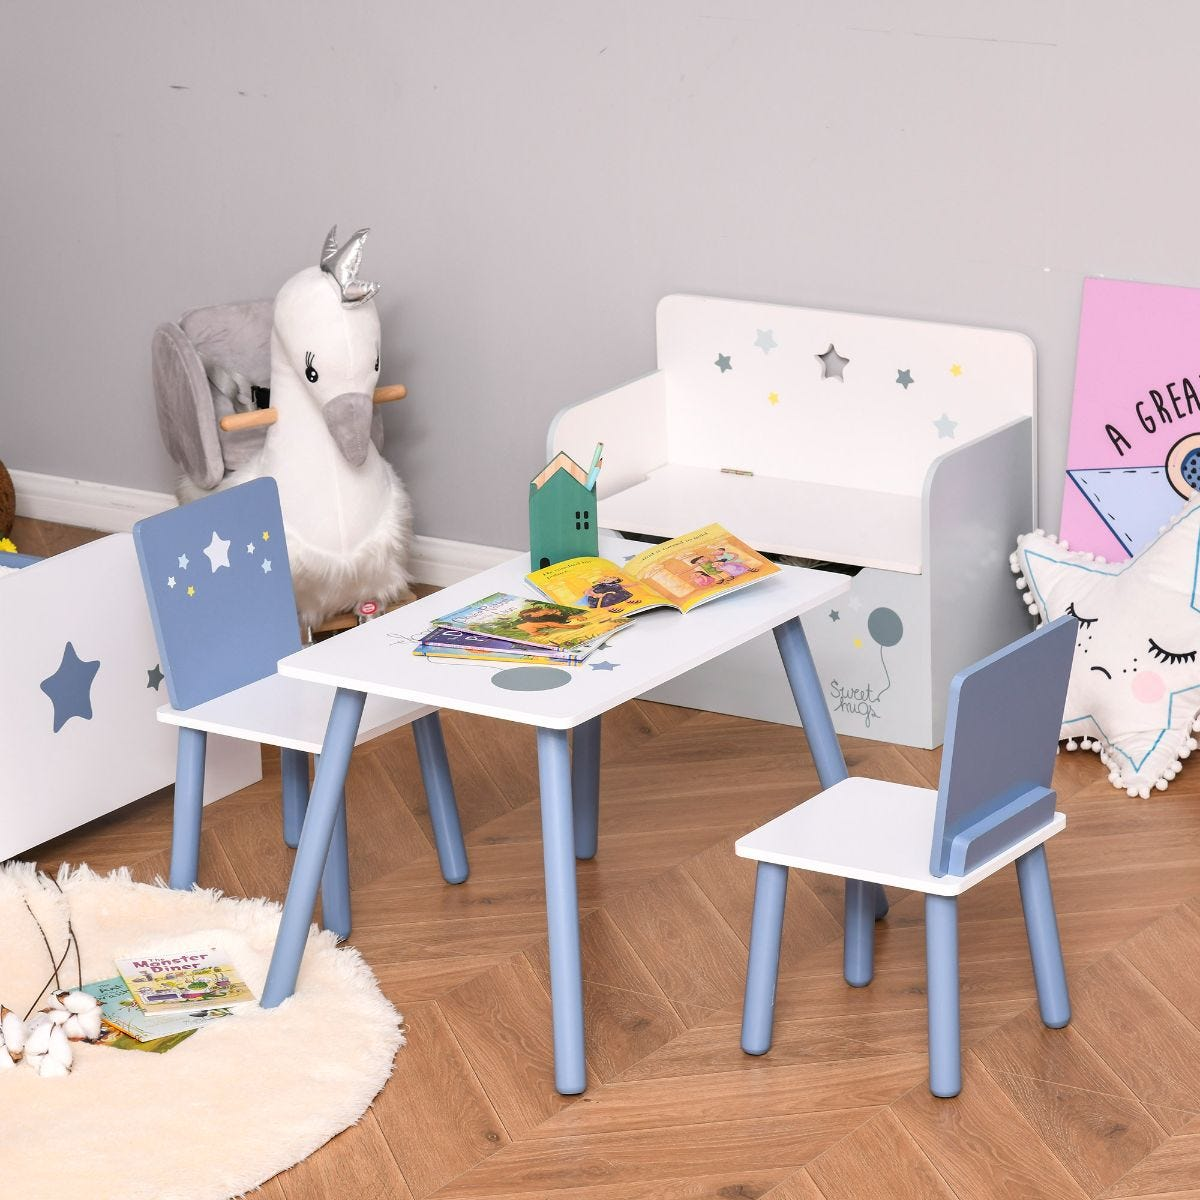 3 Pieces Kids Table And Chairs Dining Set Wood Legs Safe Corners Stars Blue And White